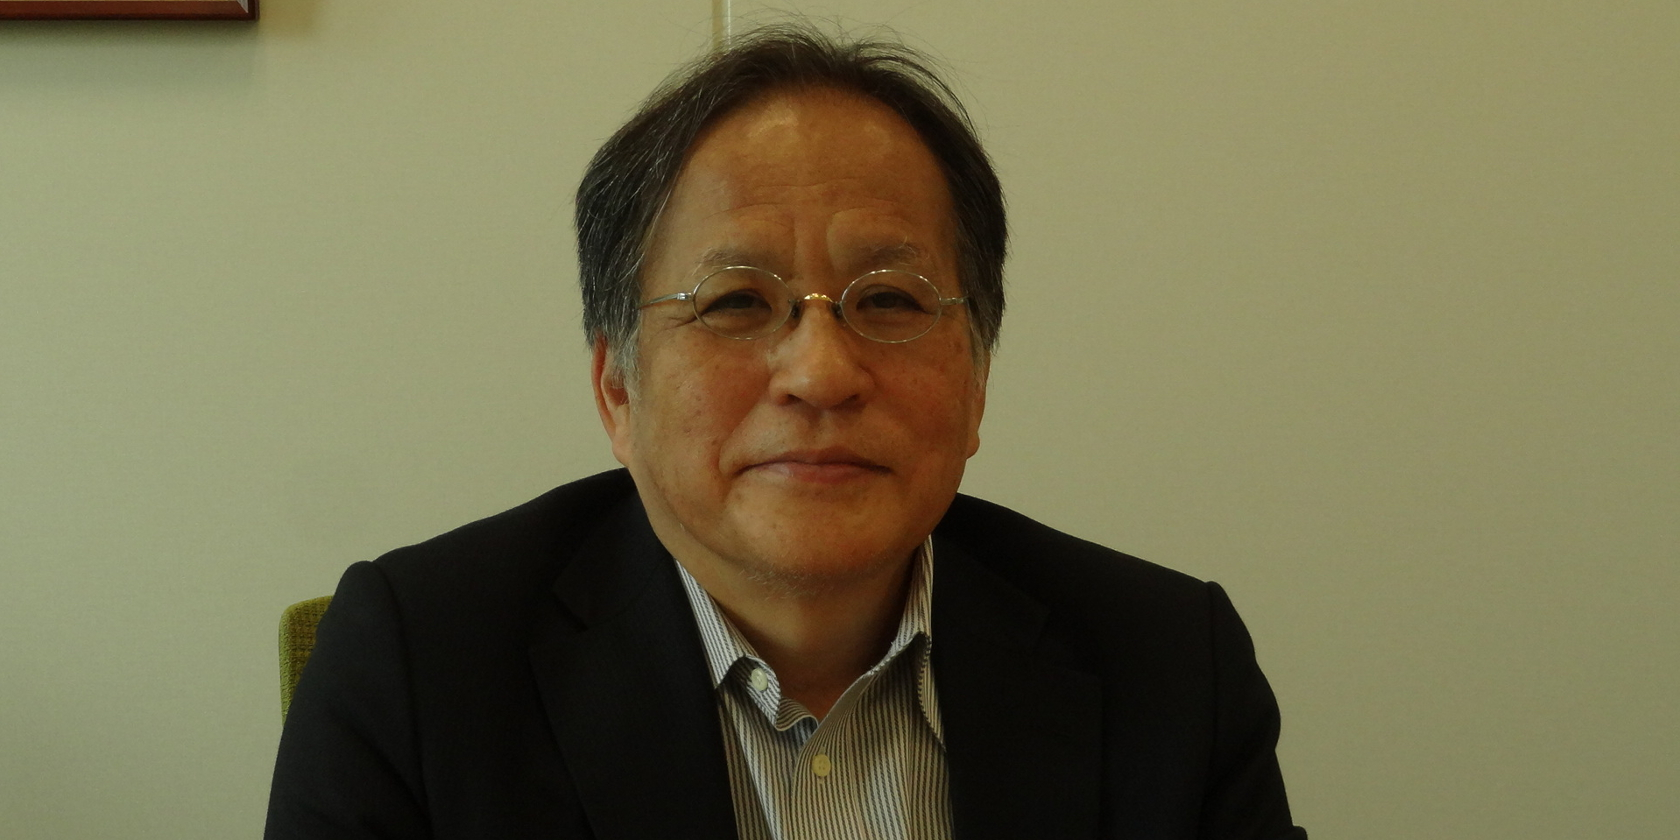 New Mitsubishi Chemical CDO Iwano Discusses Digitalization in the Chemical Industry